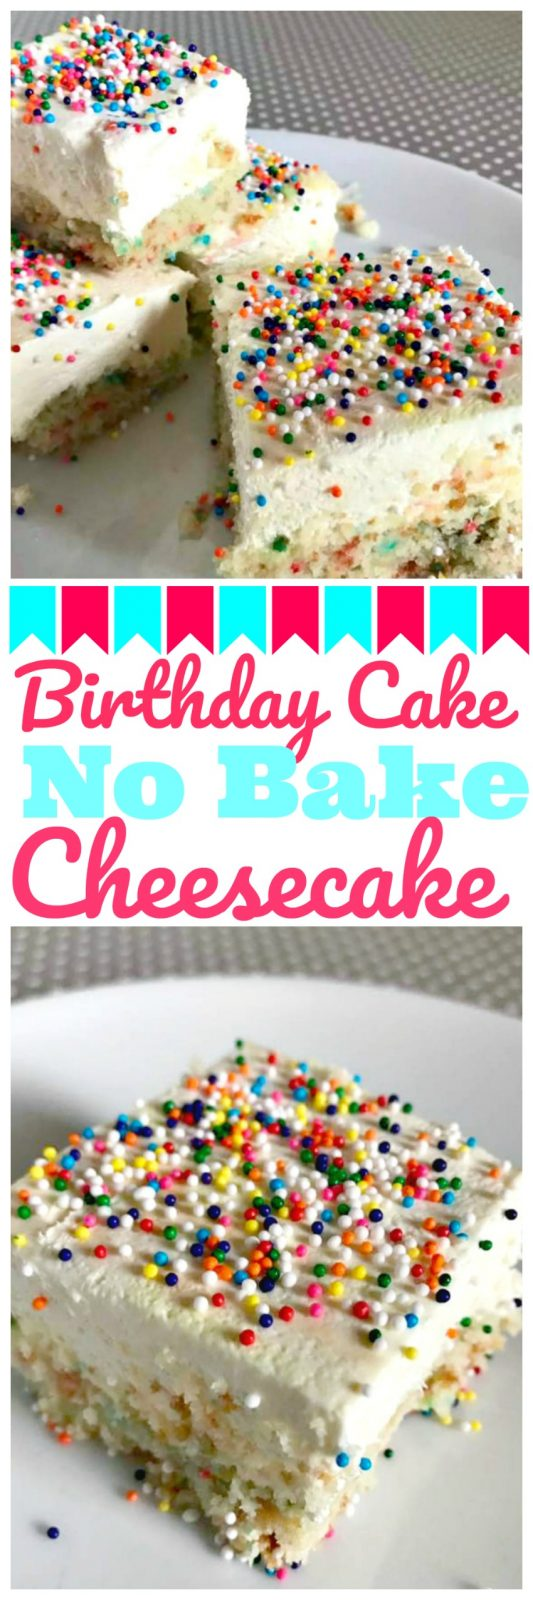 Birthday Cake No Bake Cheesecake Bars The Cards We Drew